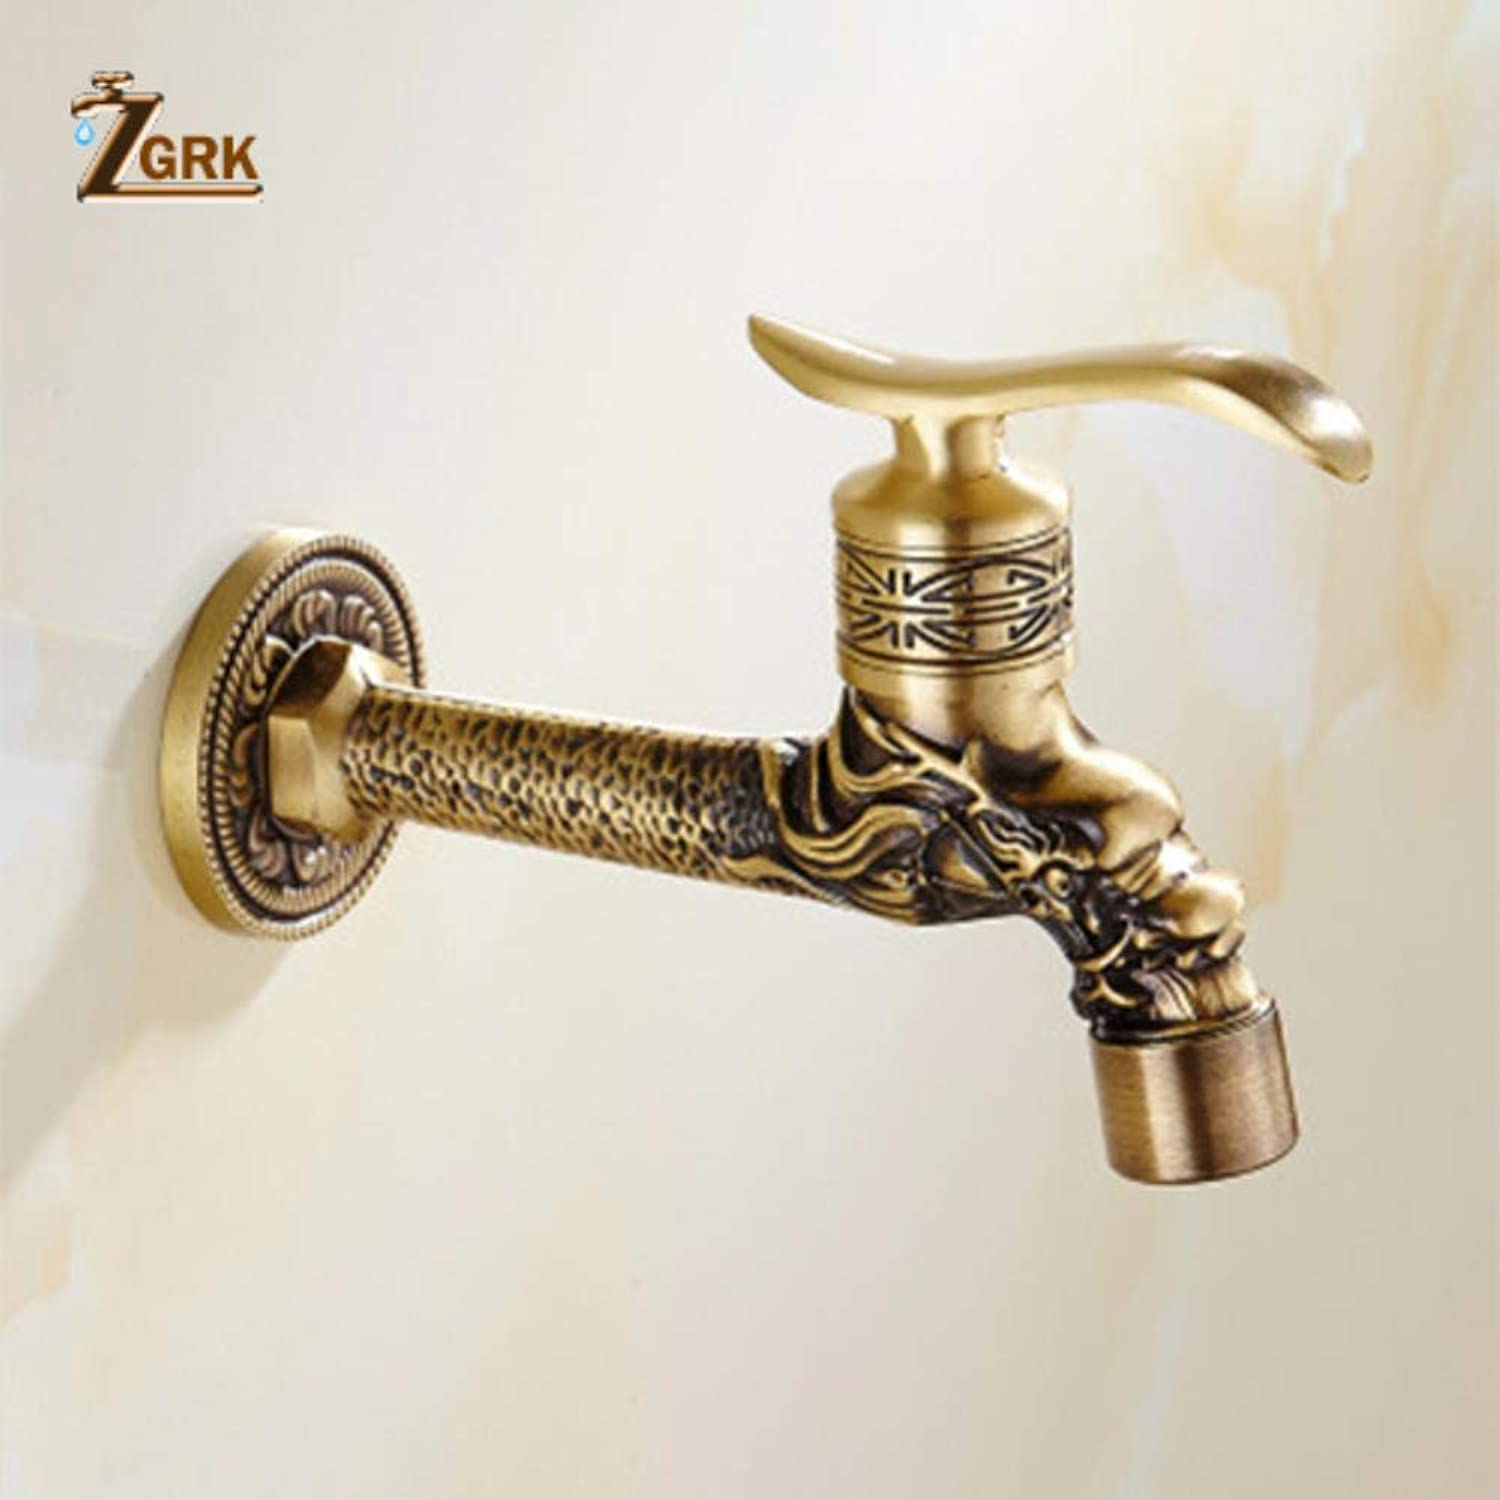 ZGRK Vintage Antique Brass redary Single Level Single Hole Kitchen Sink Mixer Tap Bathroom Sink Mixer Taps bathroom furniture fitting A-057